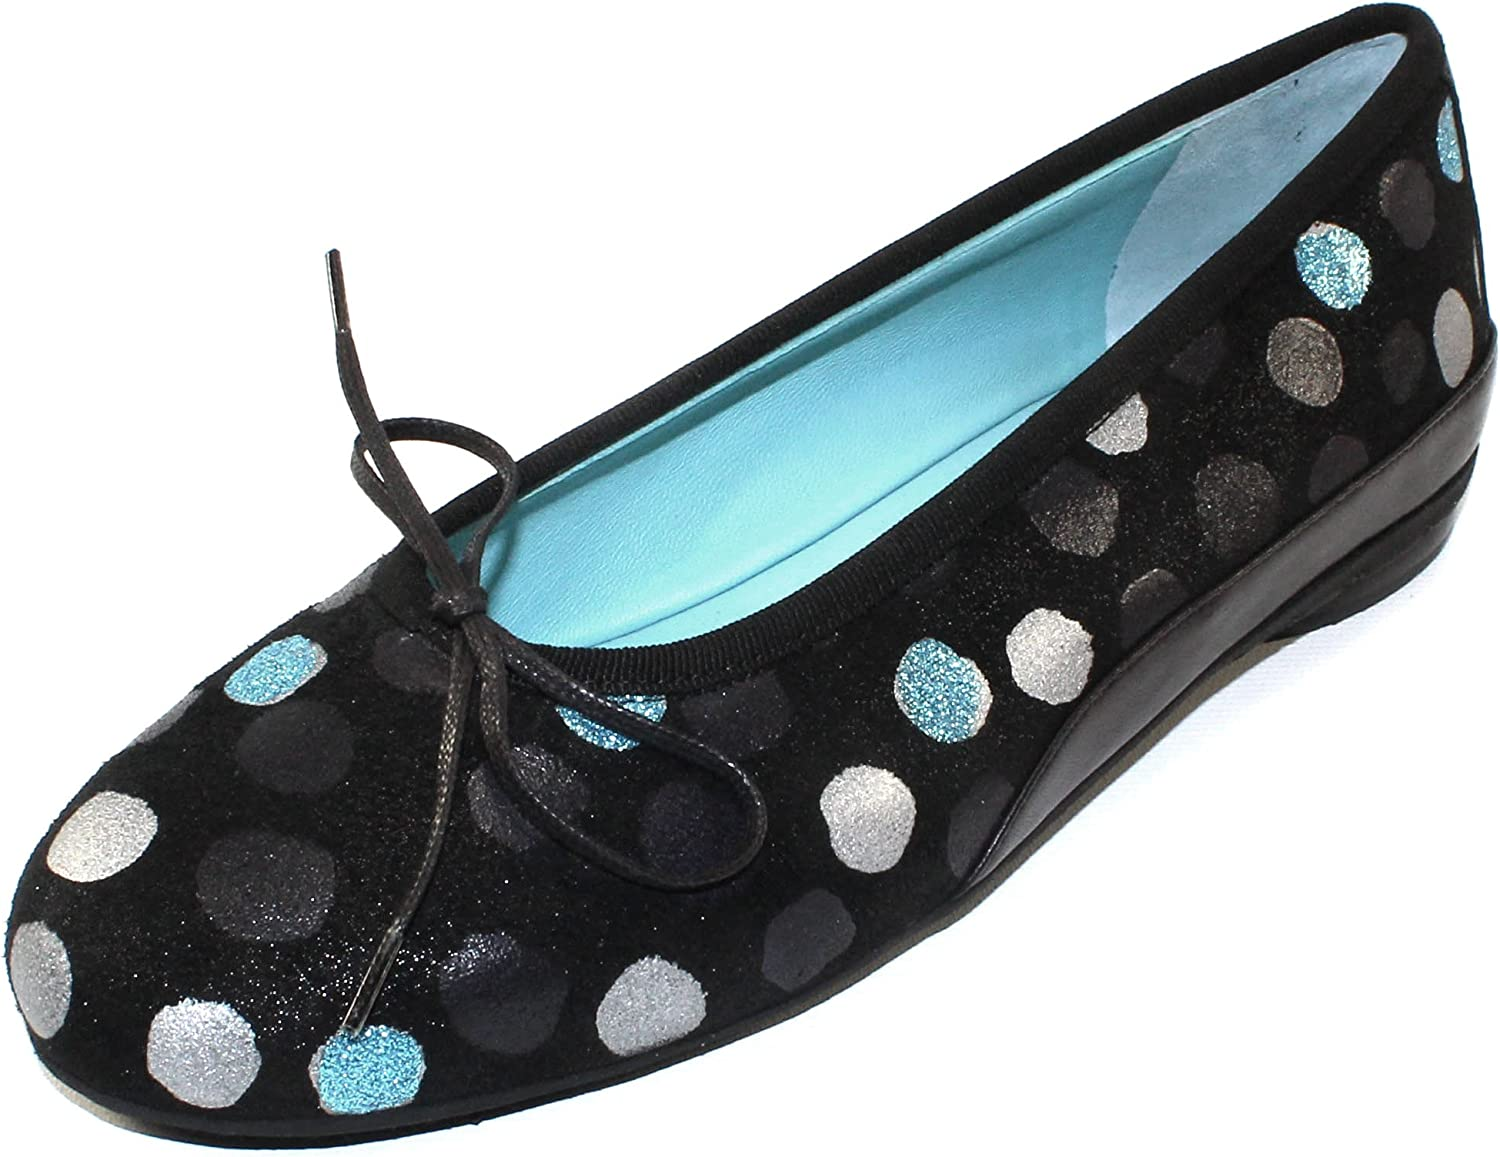 Thierry Rabotin Women's Gem in bluee Dot Kitty Black Embossed Suede Nappa Leather - Size 36.5 M